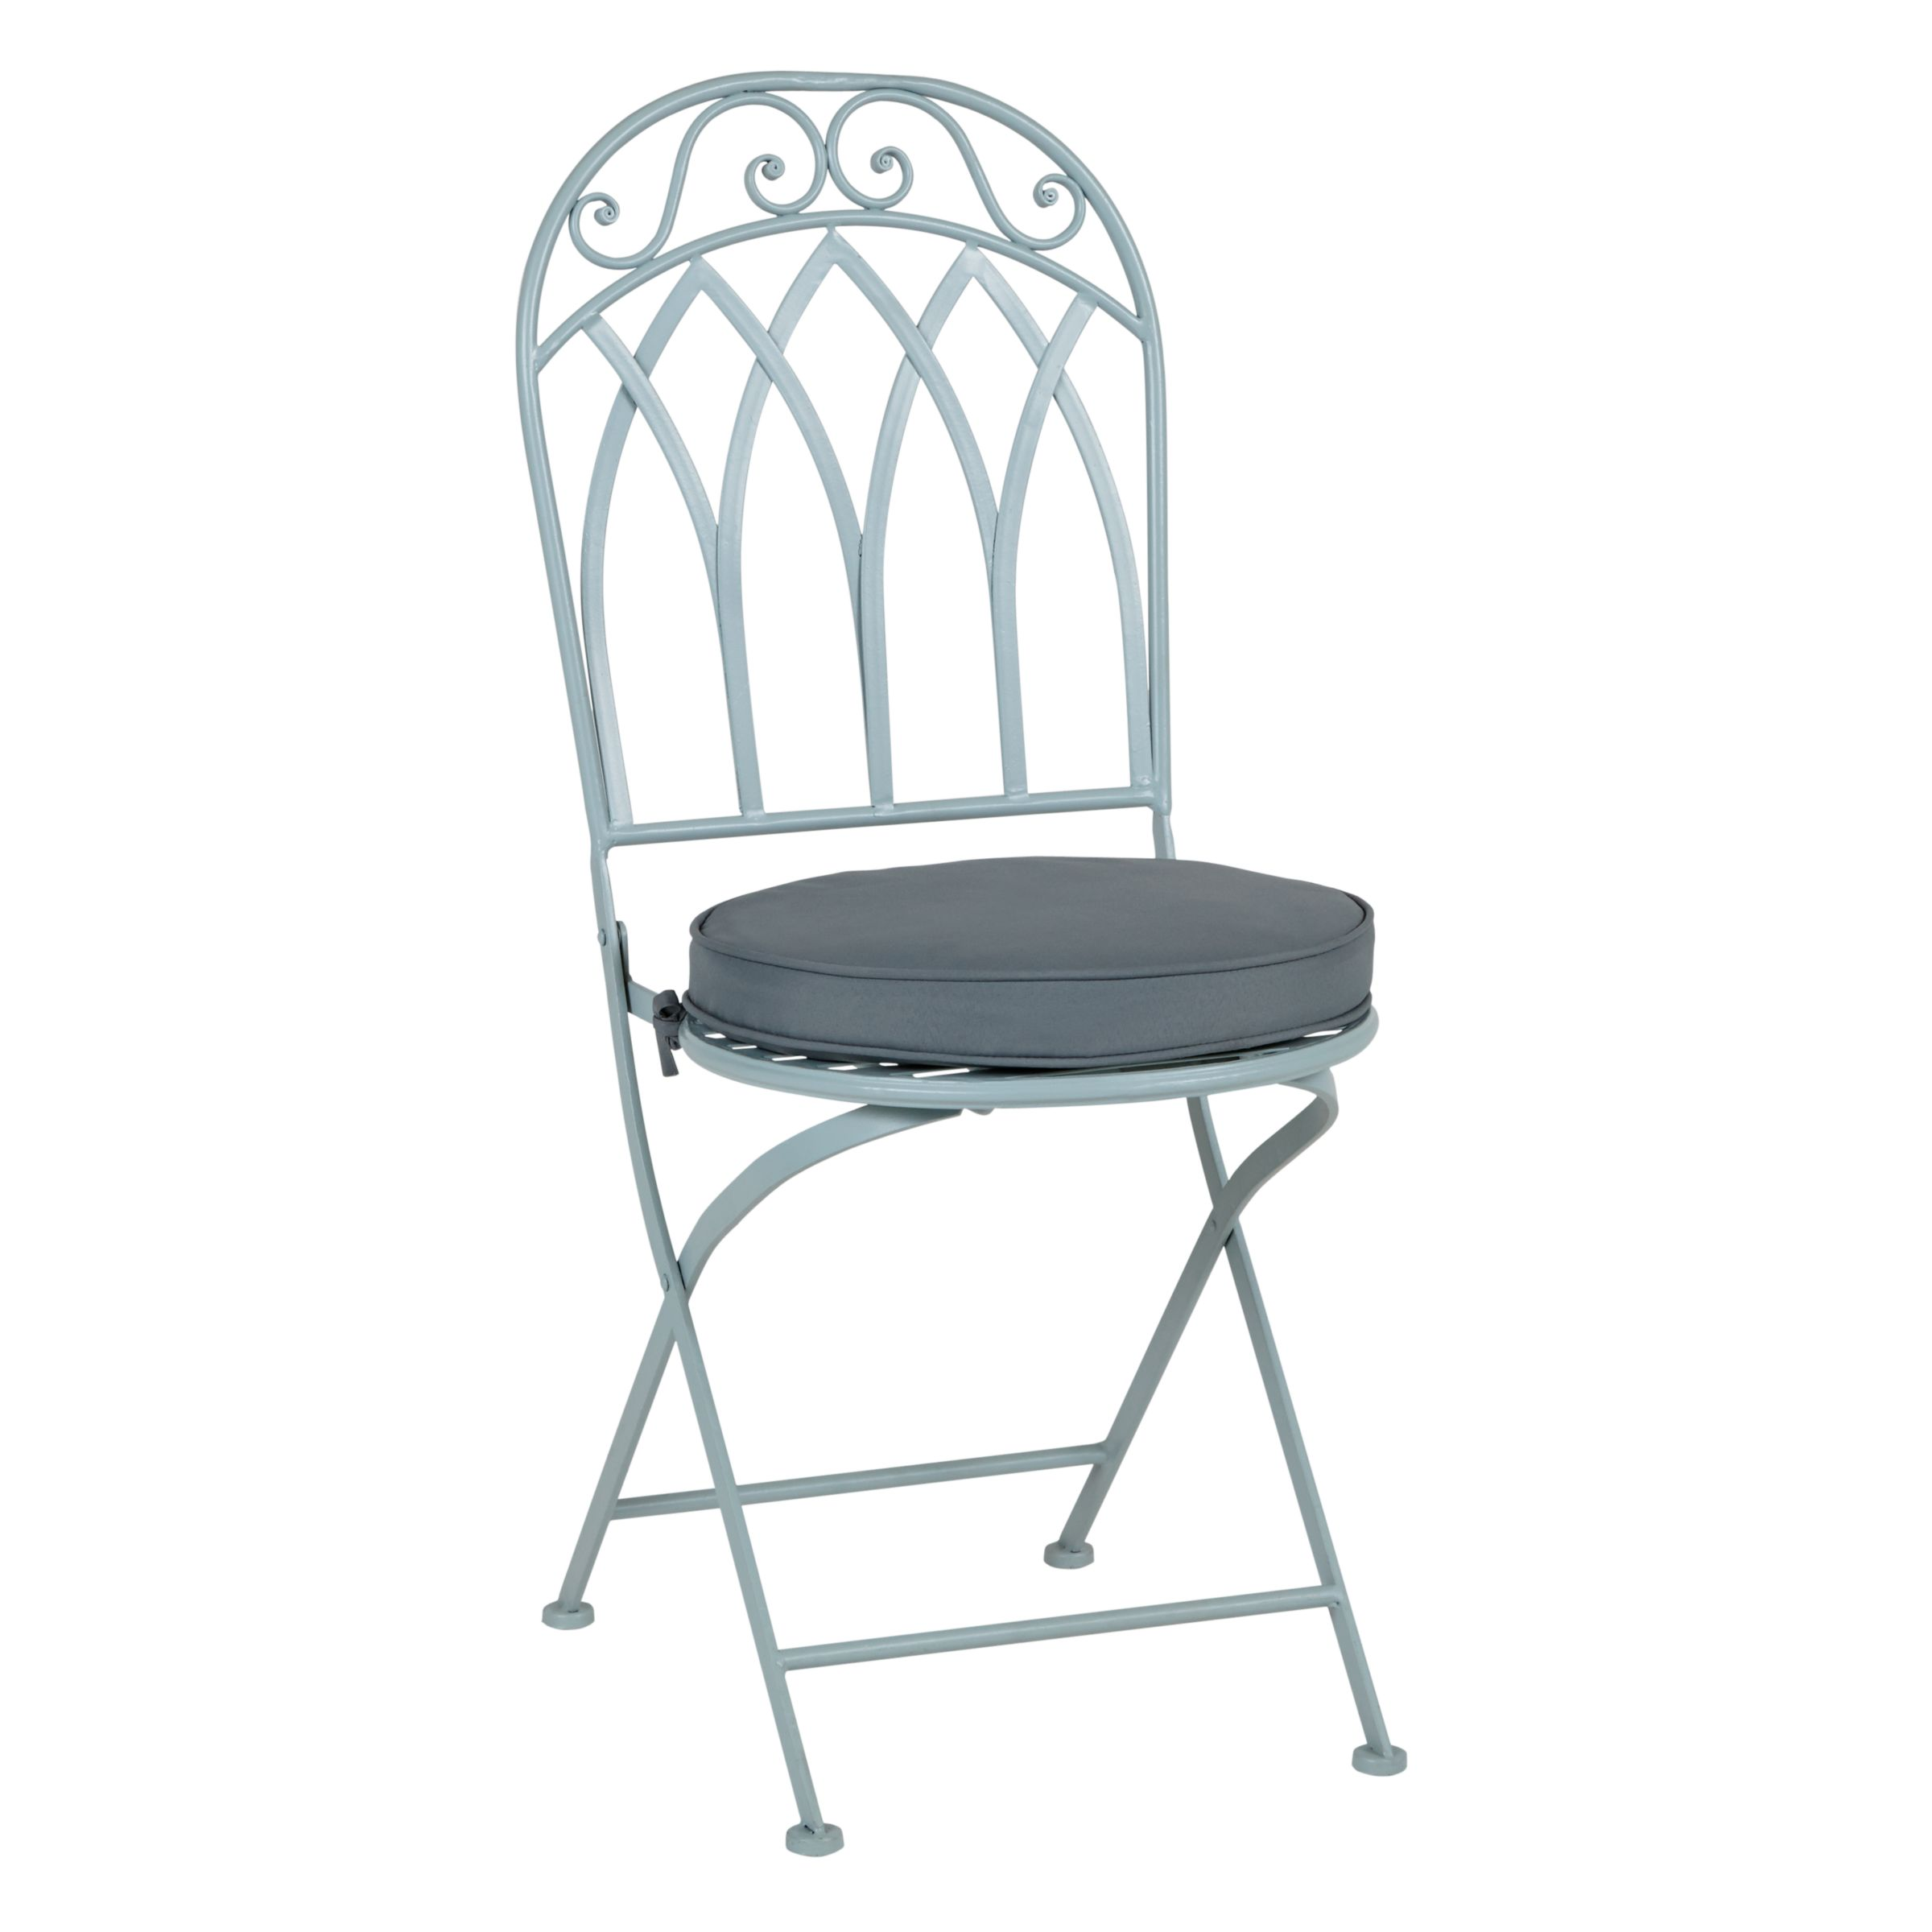 John Lewis Vichy Pair of Folding Chairs